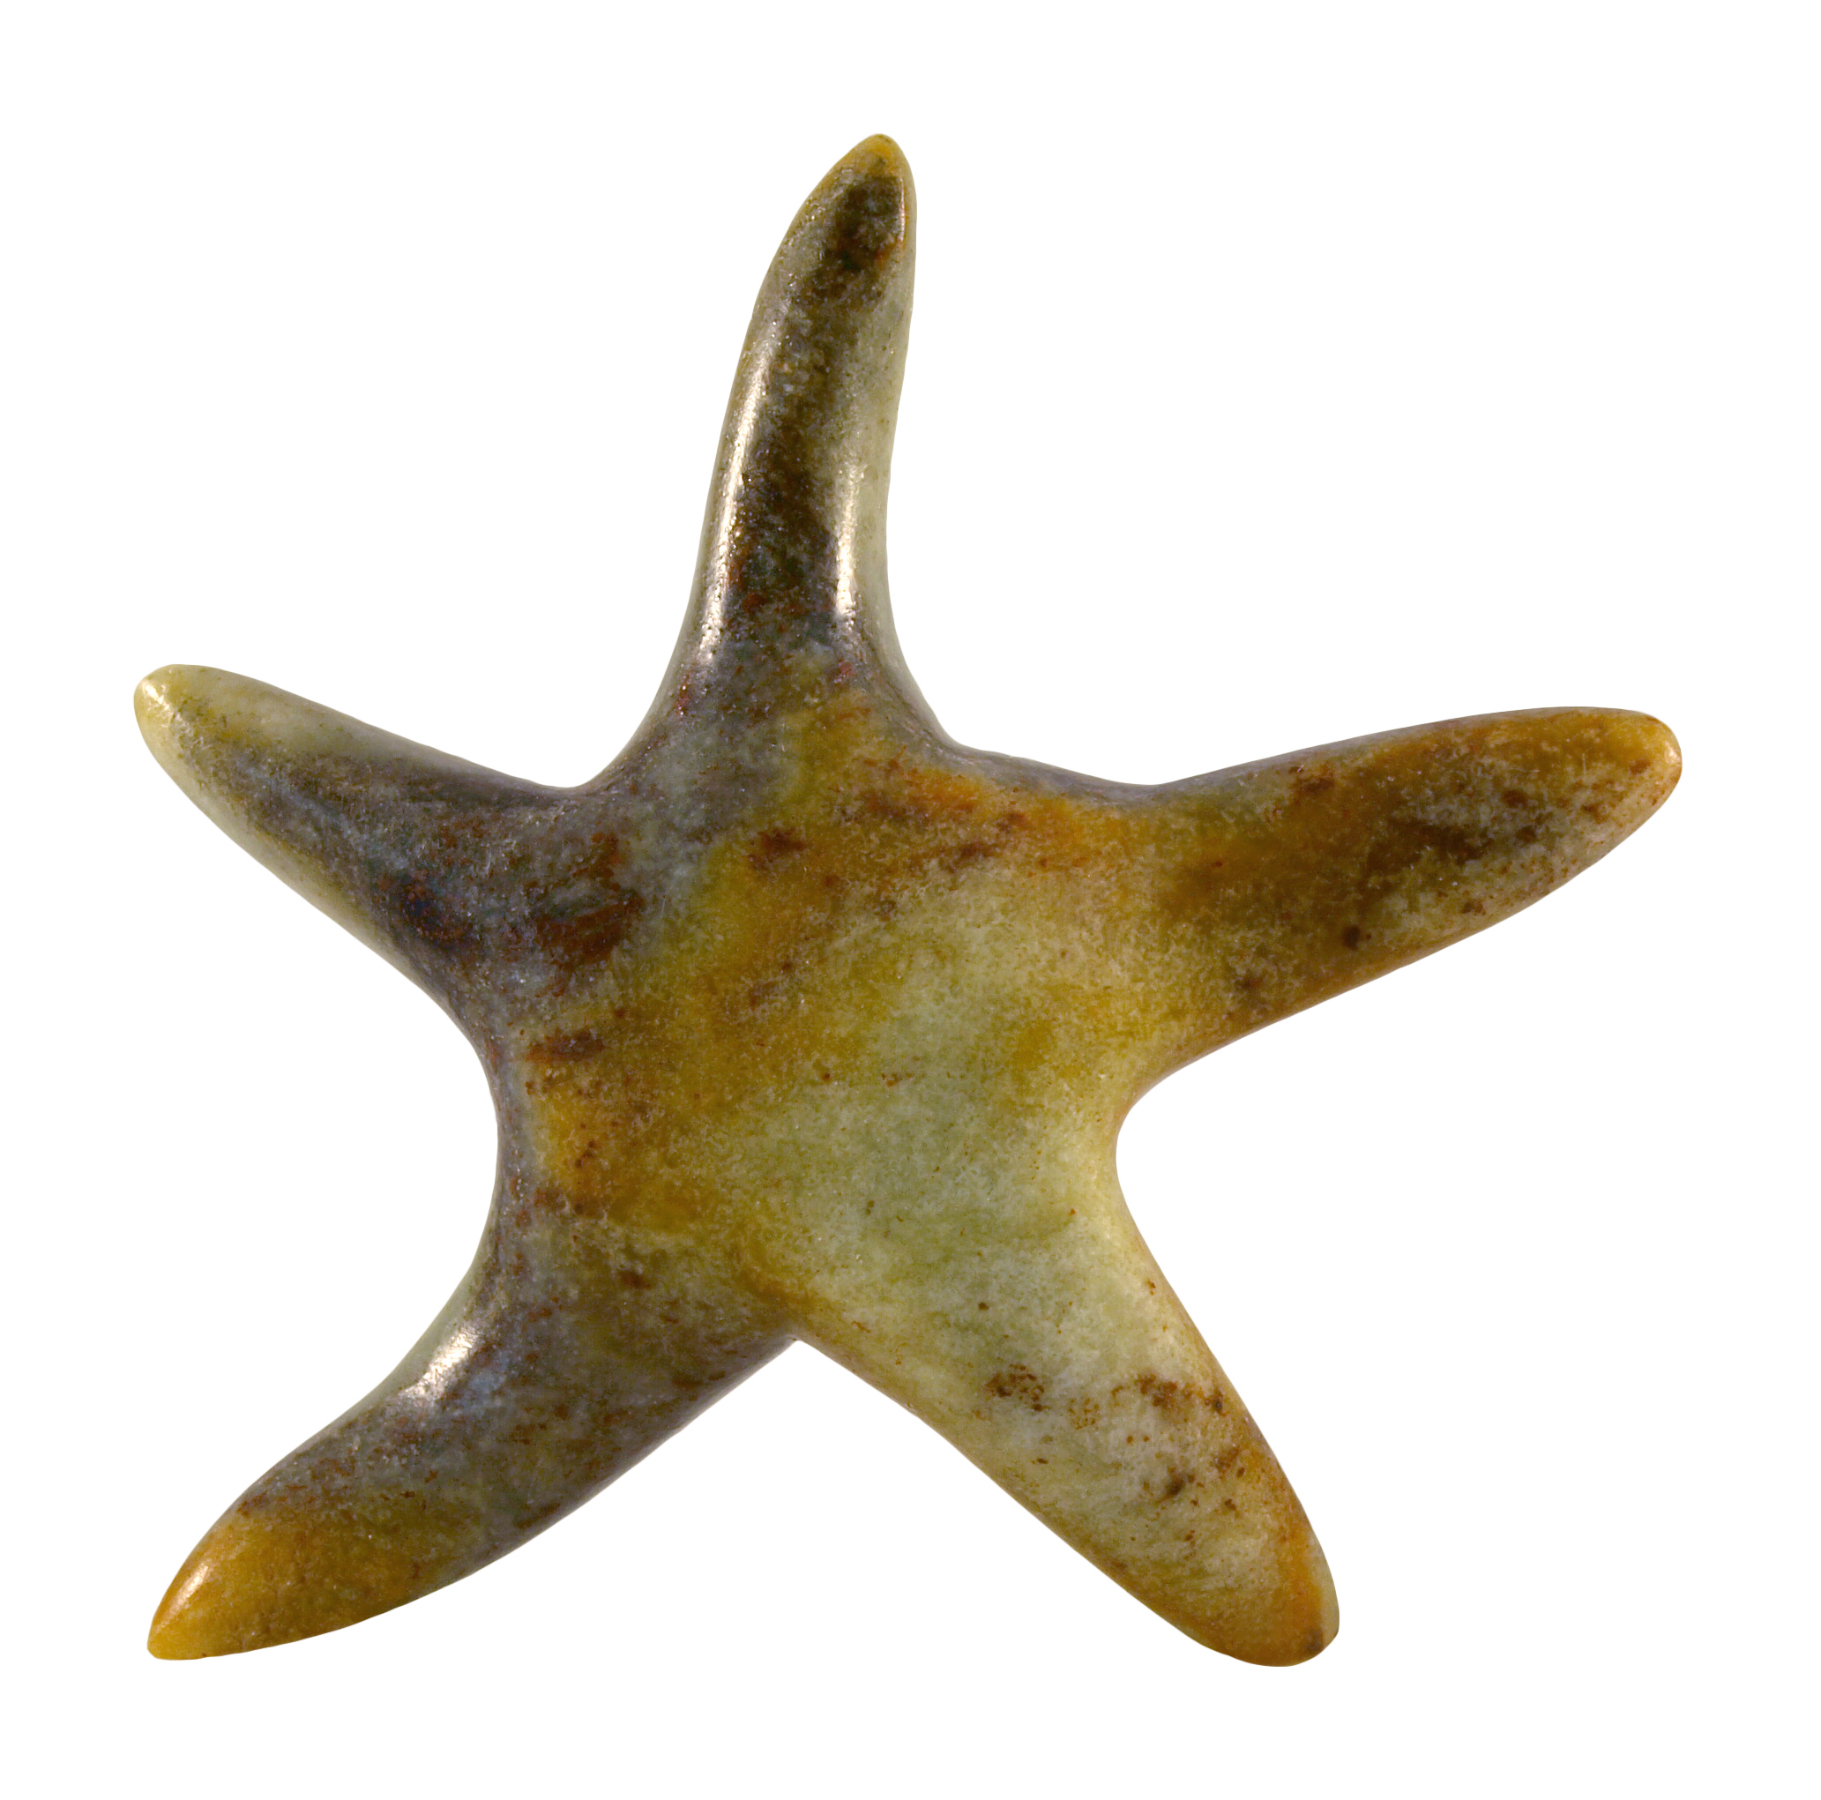 Soapstone Starfish Sculpture Carving Kit